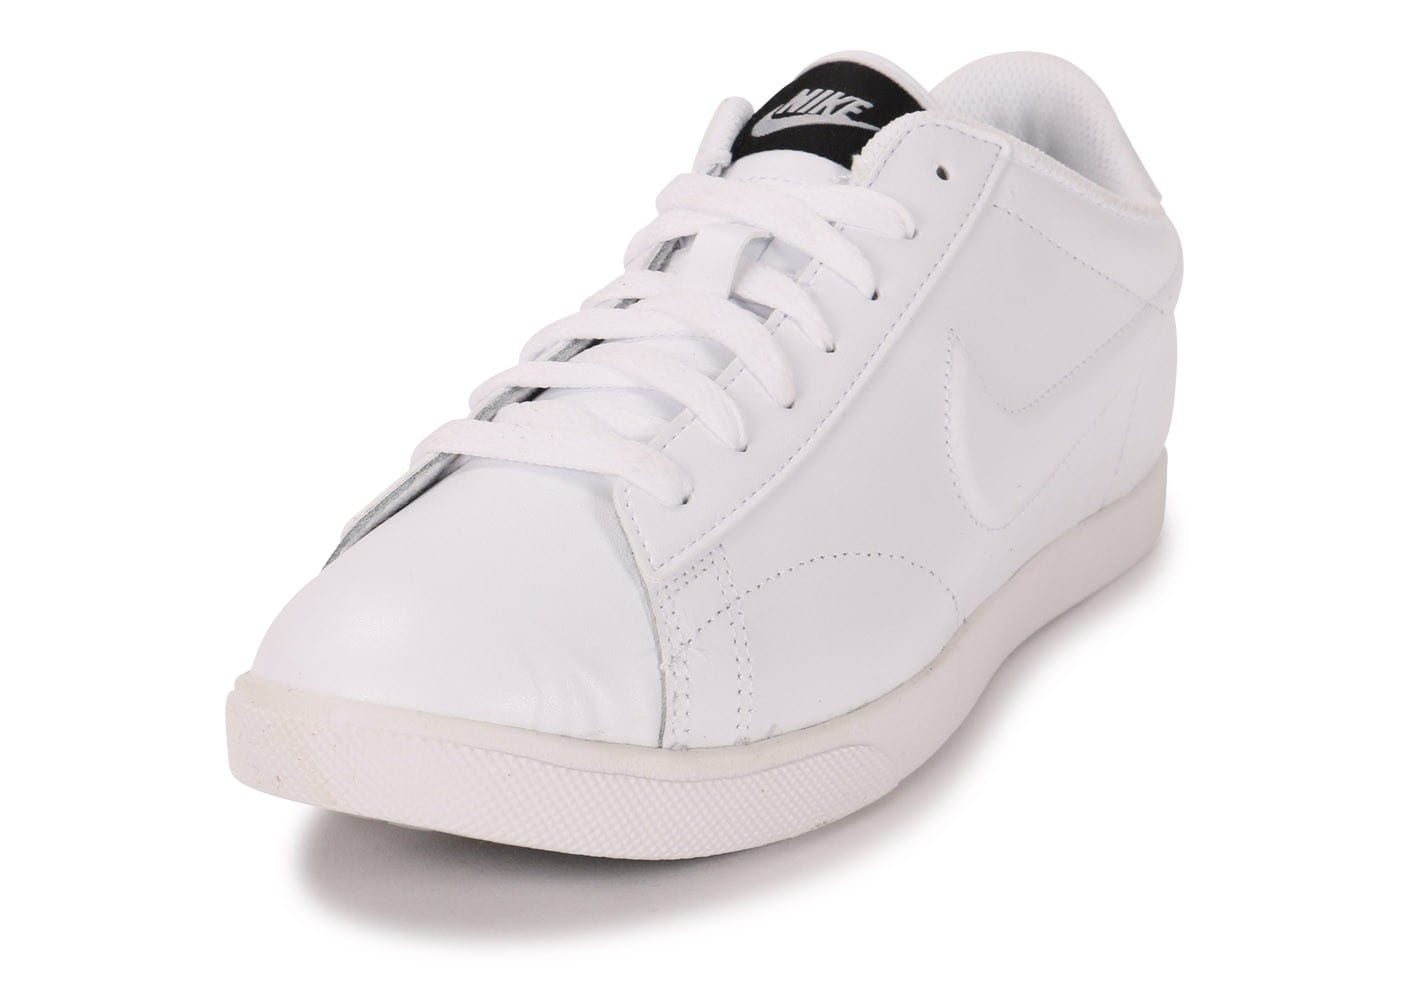 Nike Racquette Blanche Chaussures Chaussures Chausport